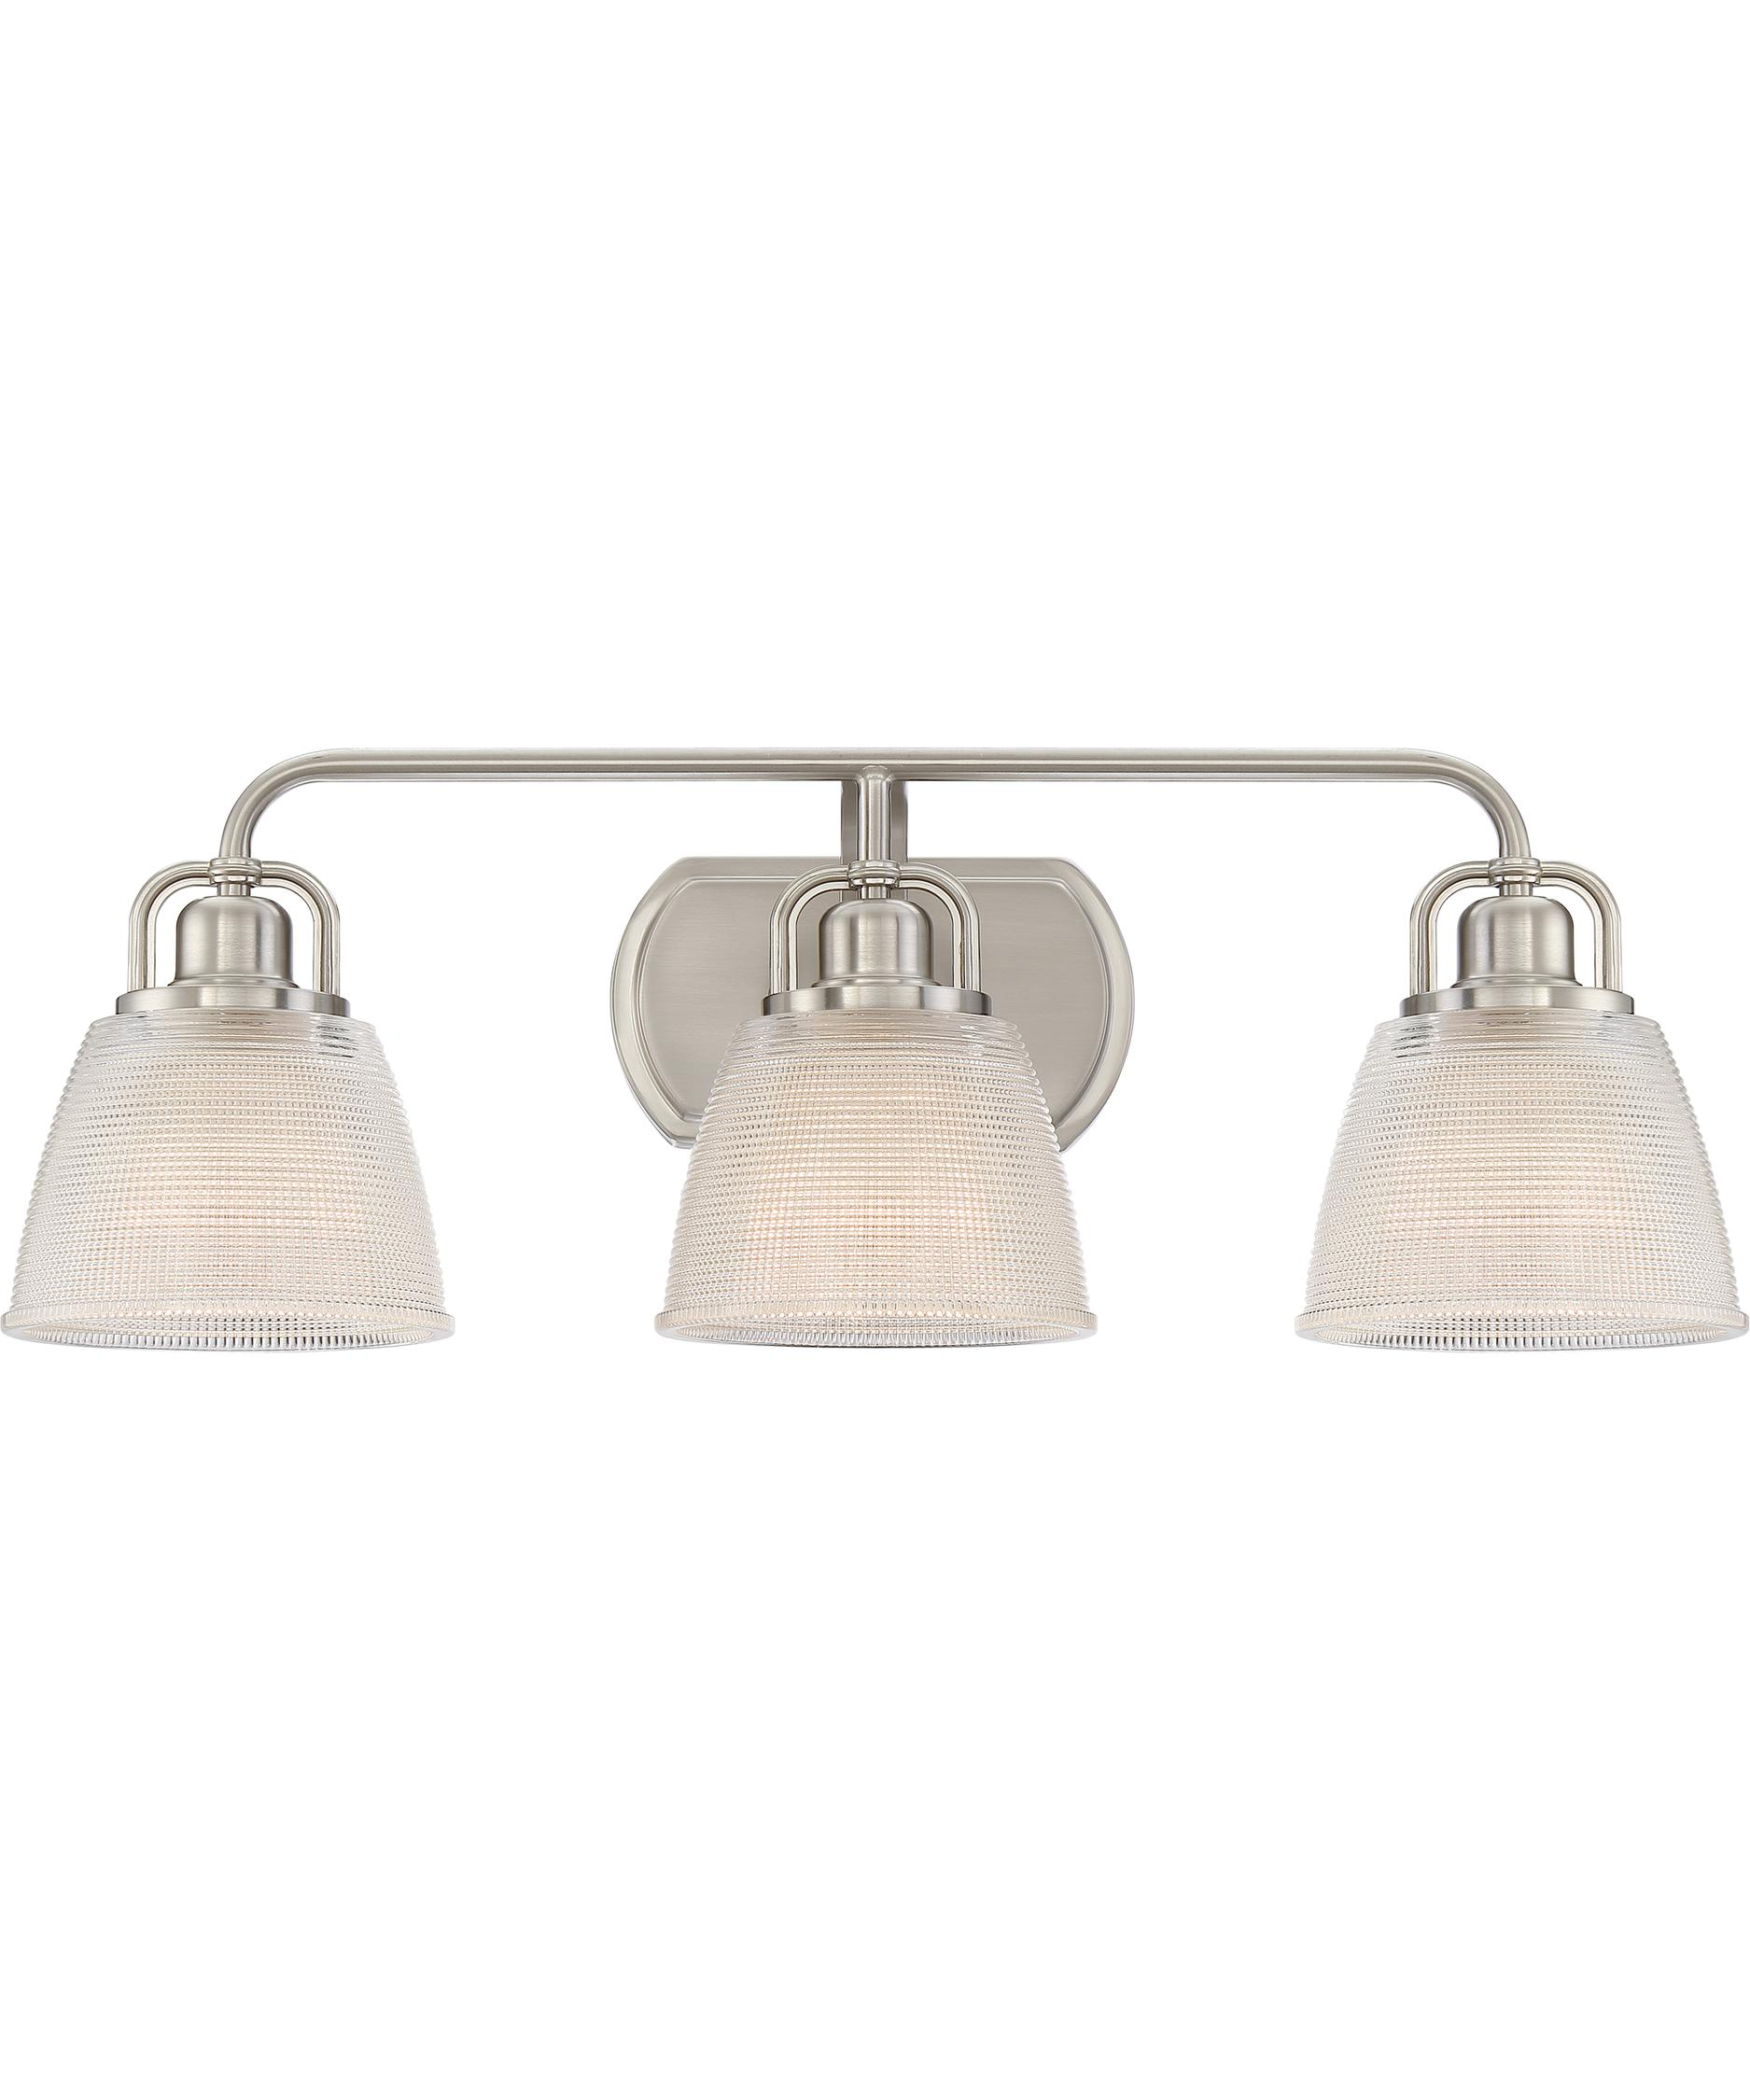 shown in brushed nickel finish and clear glass - Quoizel Bathroom Lighting